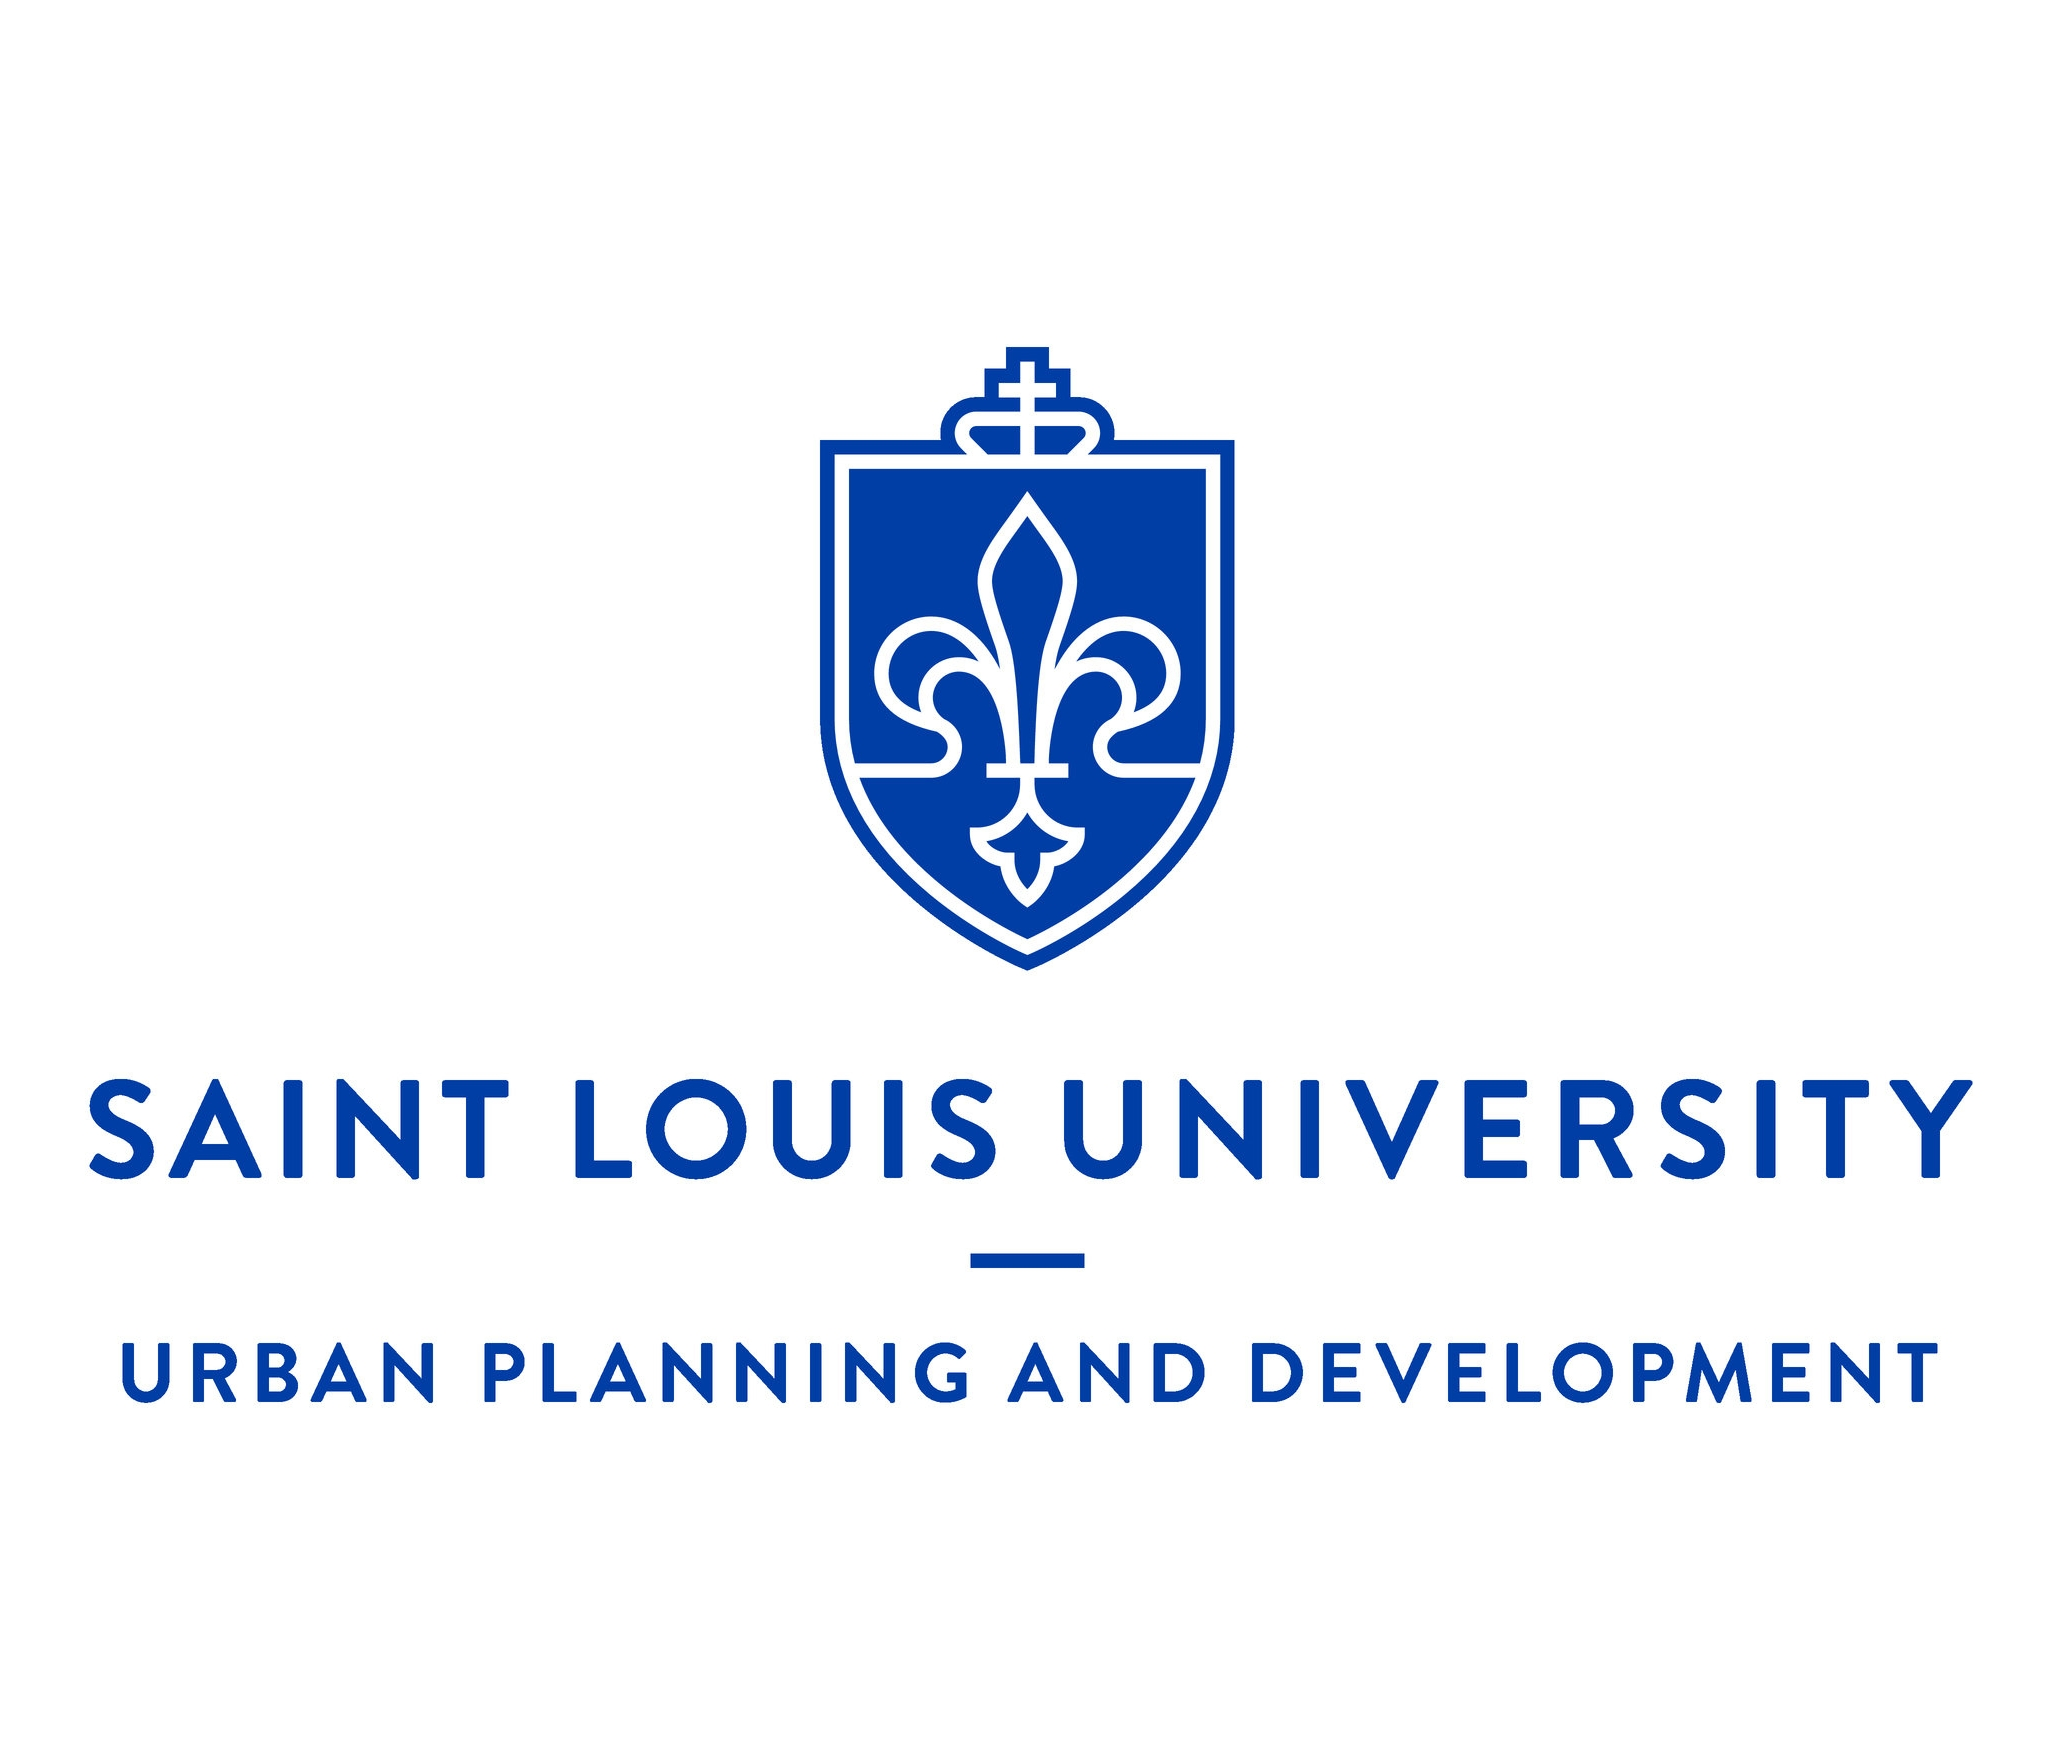 Saint Louis University Urban Planning and Development